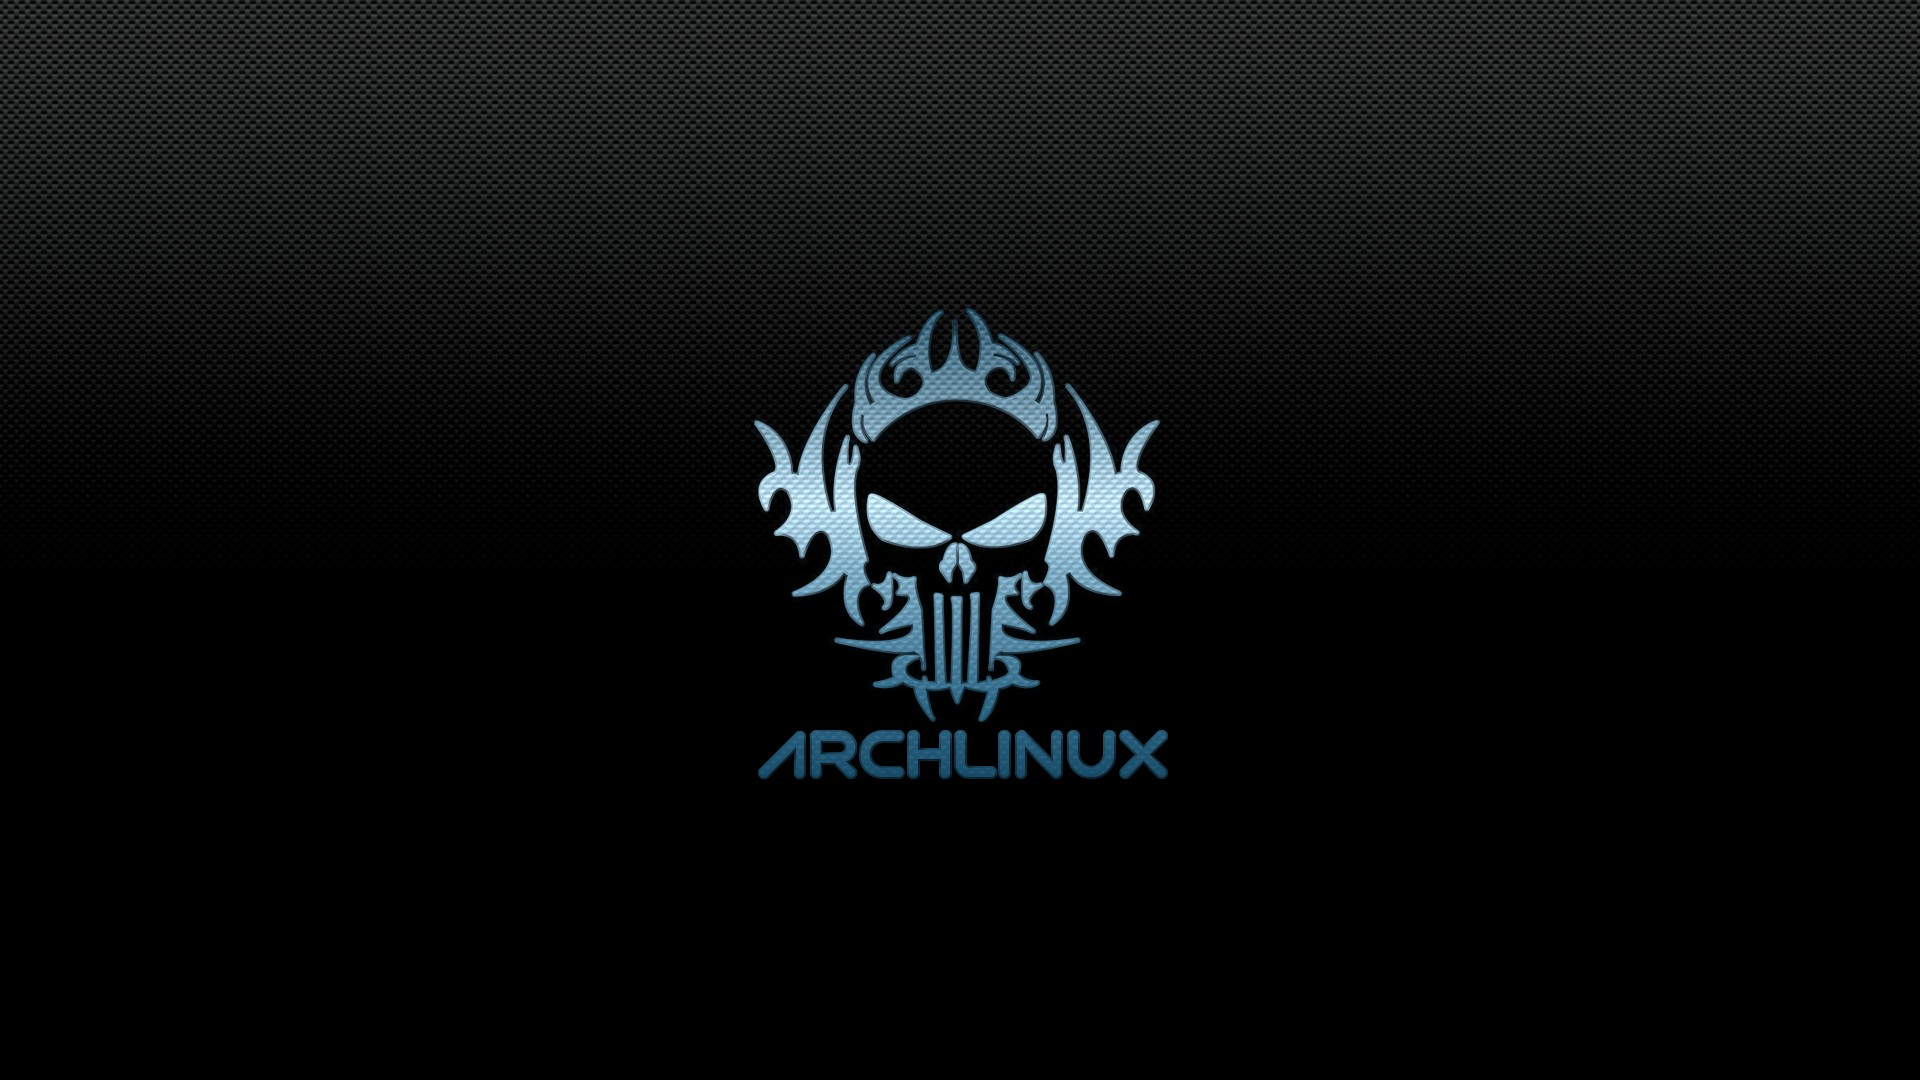 Arch Linux Black OS Wallpaper Download Wallpaper with 1920x1080 1920x1080